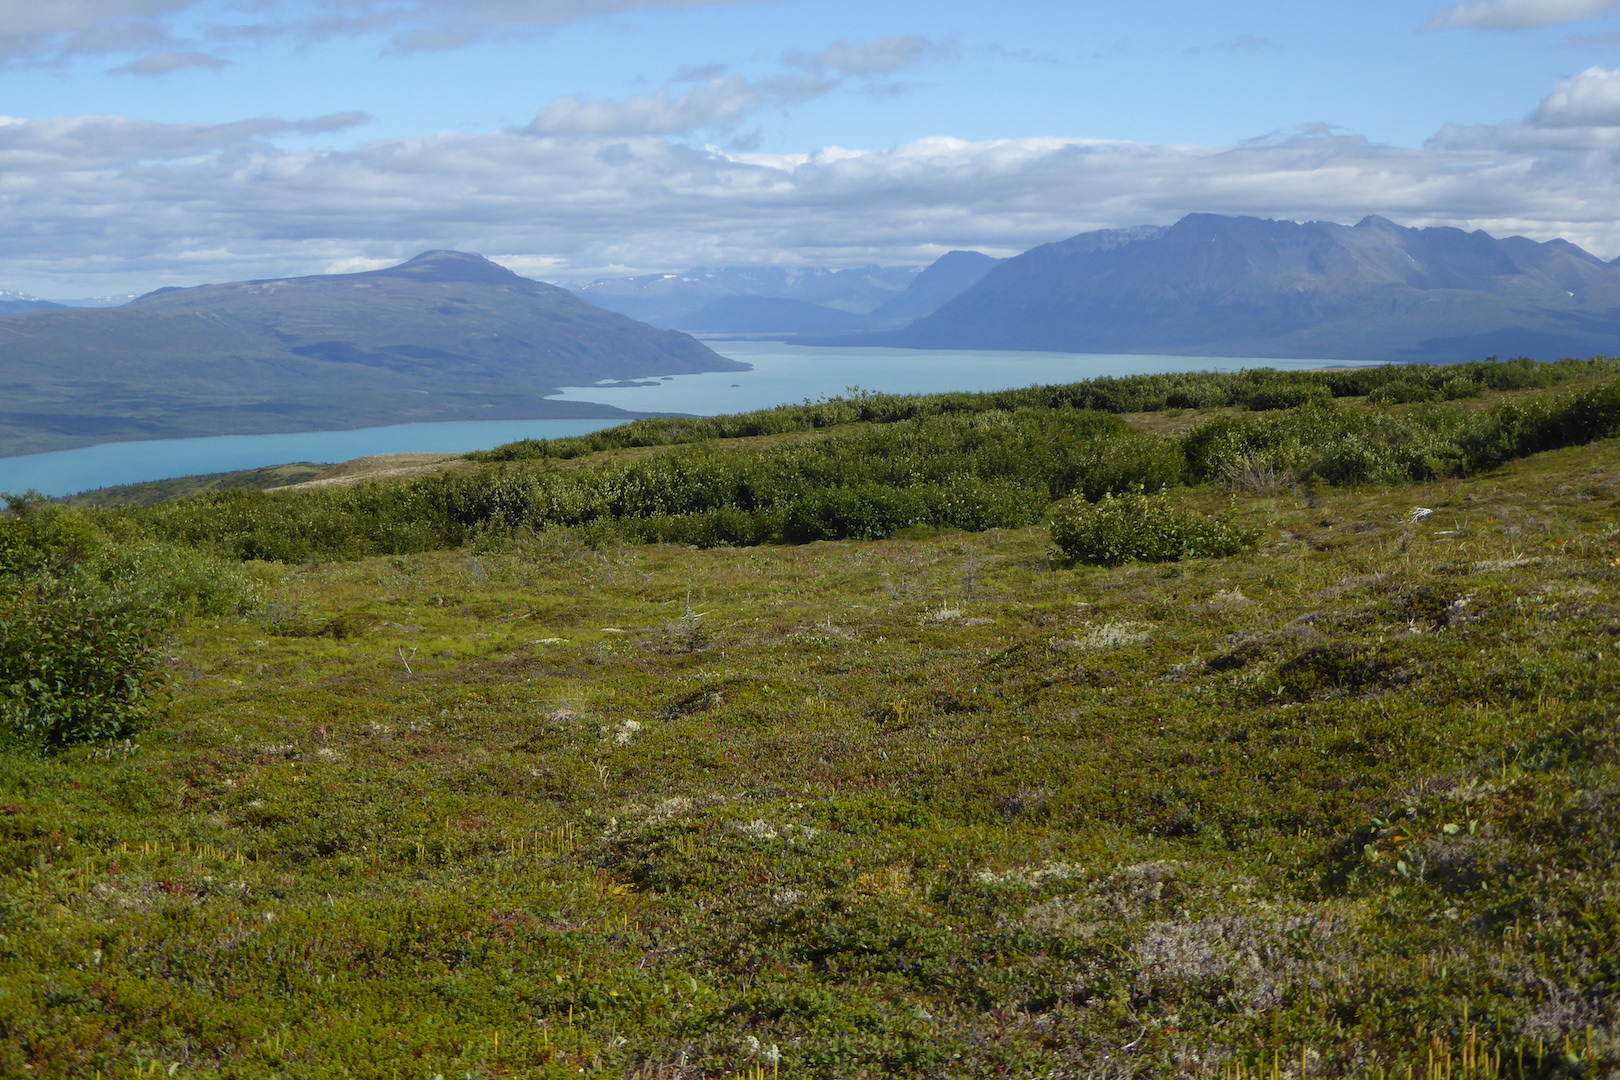 view of tundra and shrubs with mountains and lake in background